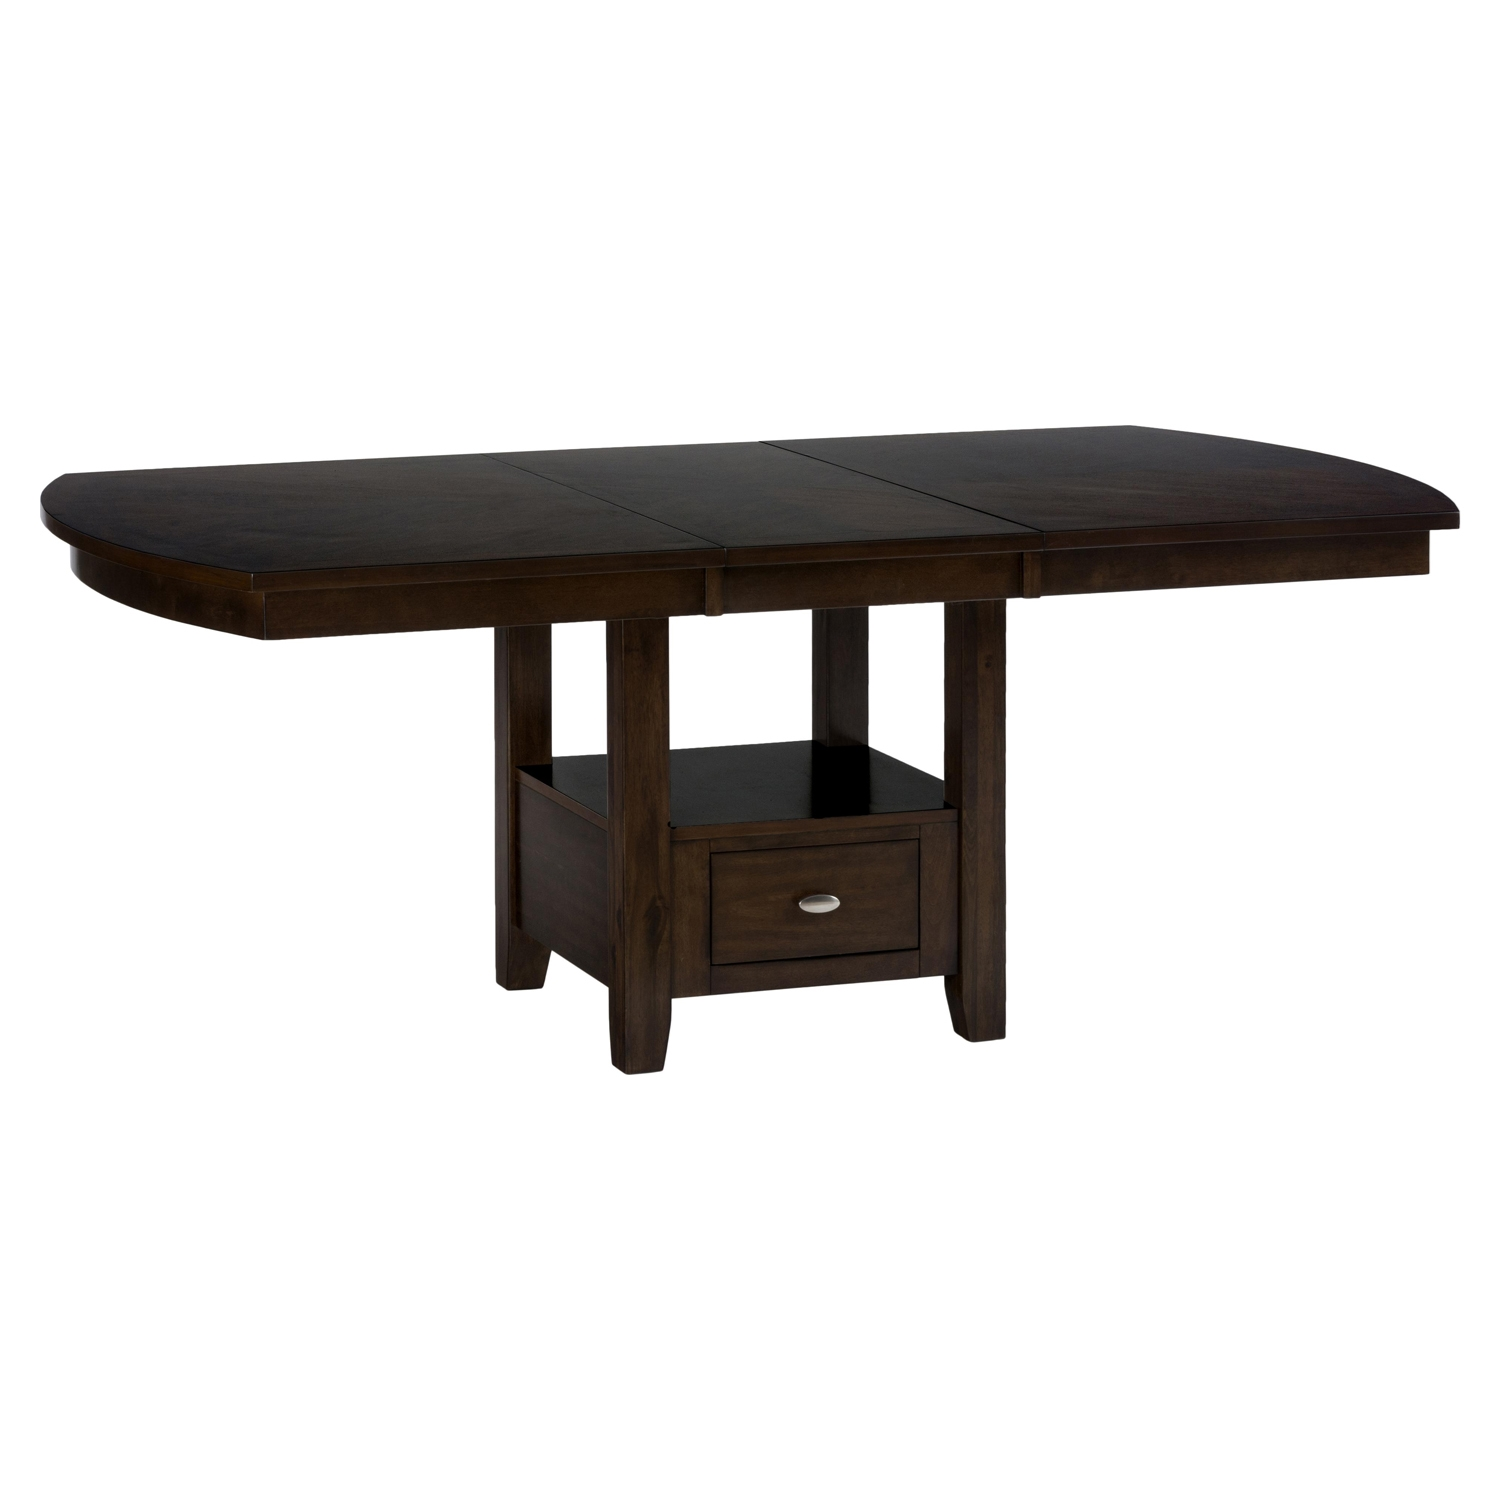 Mirandela HighLow Dining Table with Storage Base DCG Stores : 836 78tbkt 1 from www.dcgstores.com size 1000 x 1000 jpeg 122kB